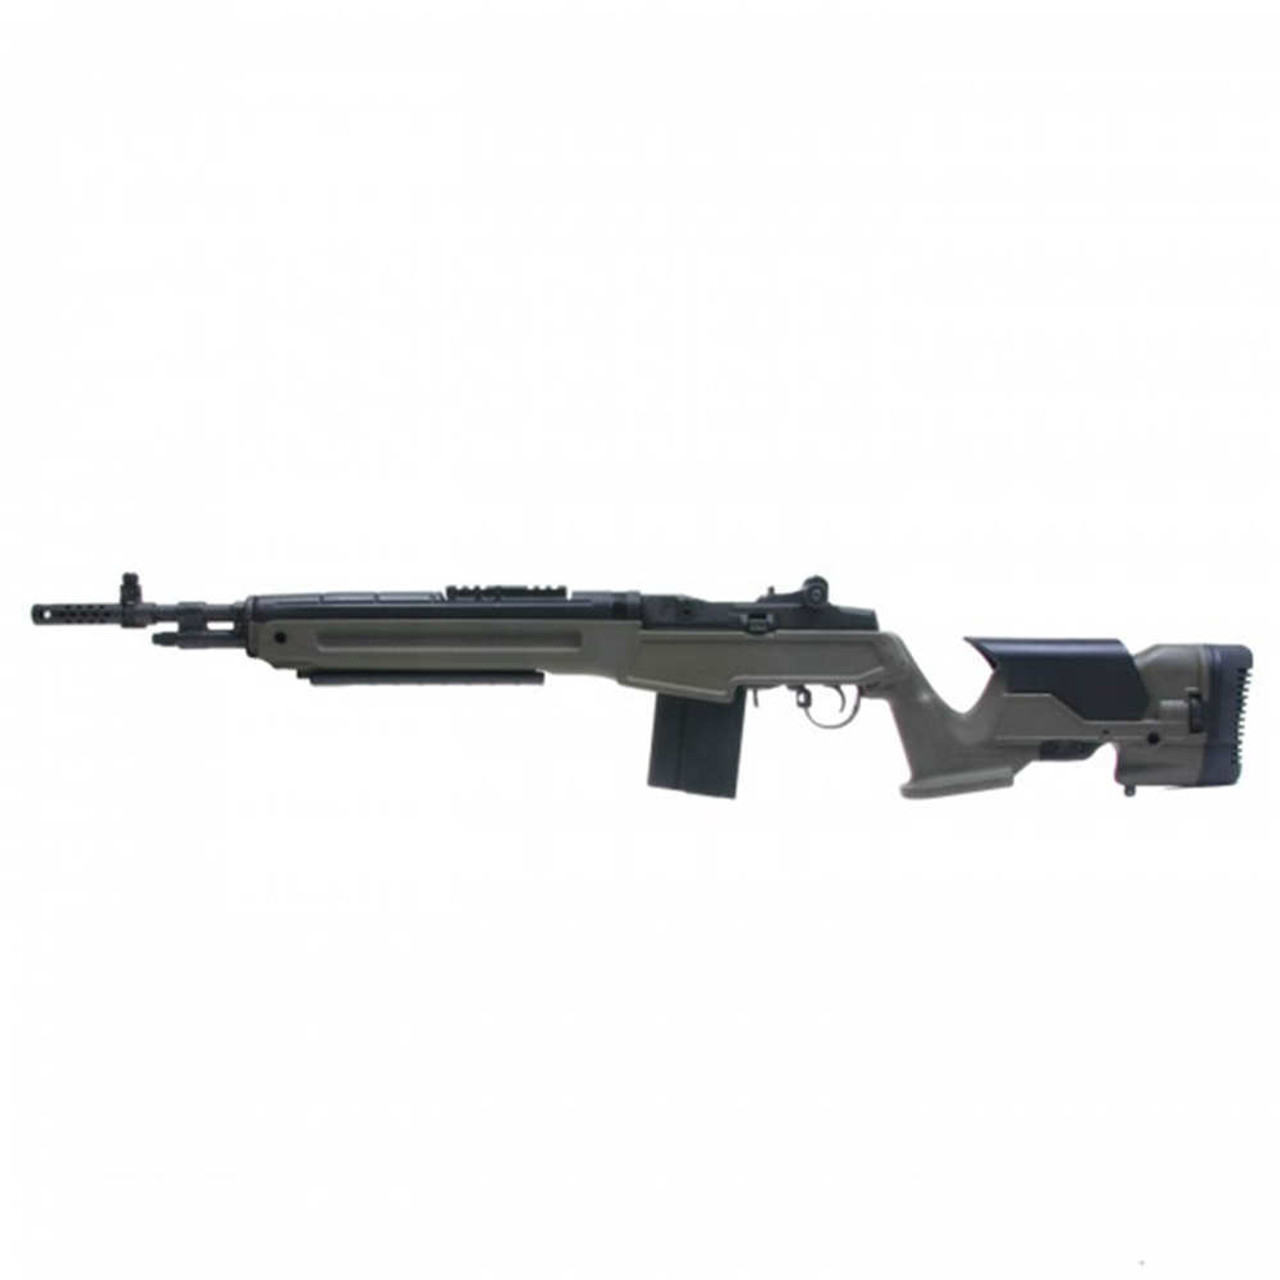 ARCHANGEL M1A PERCISION STOCK OD, UPC :708279011481